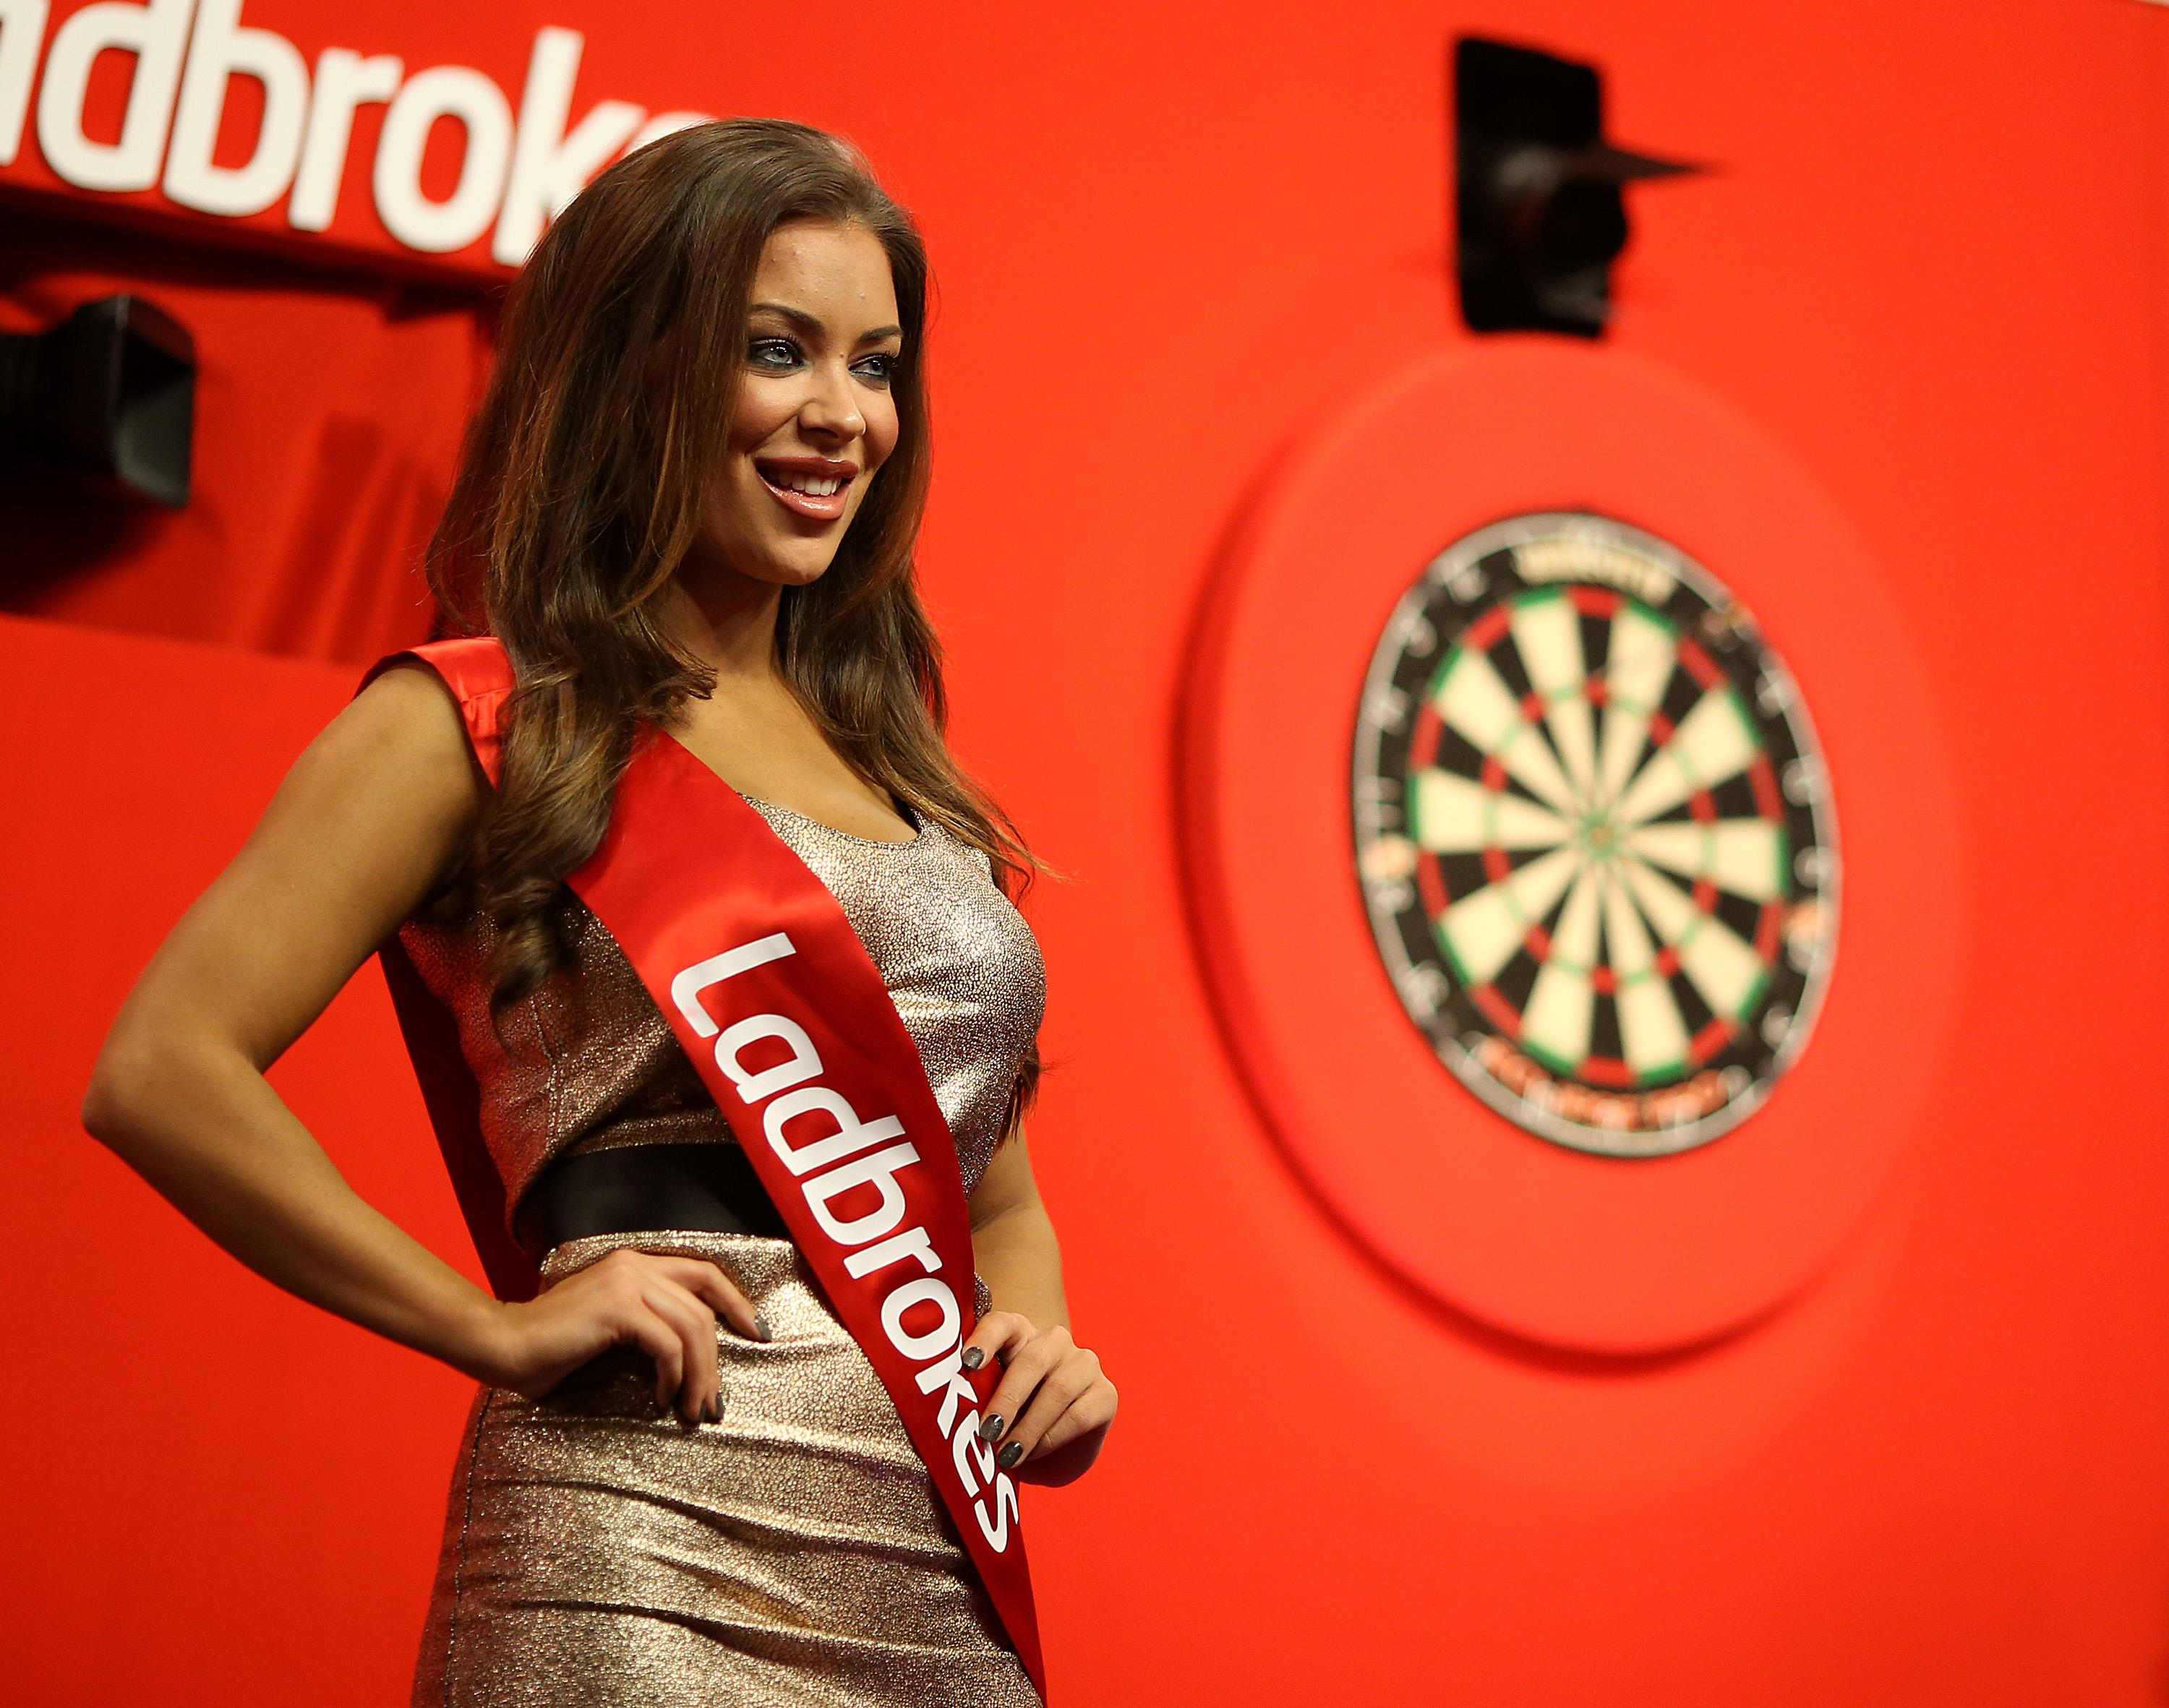 Darts was the first to ditch the use of podium girls